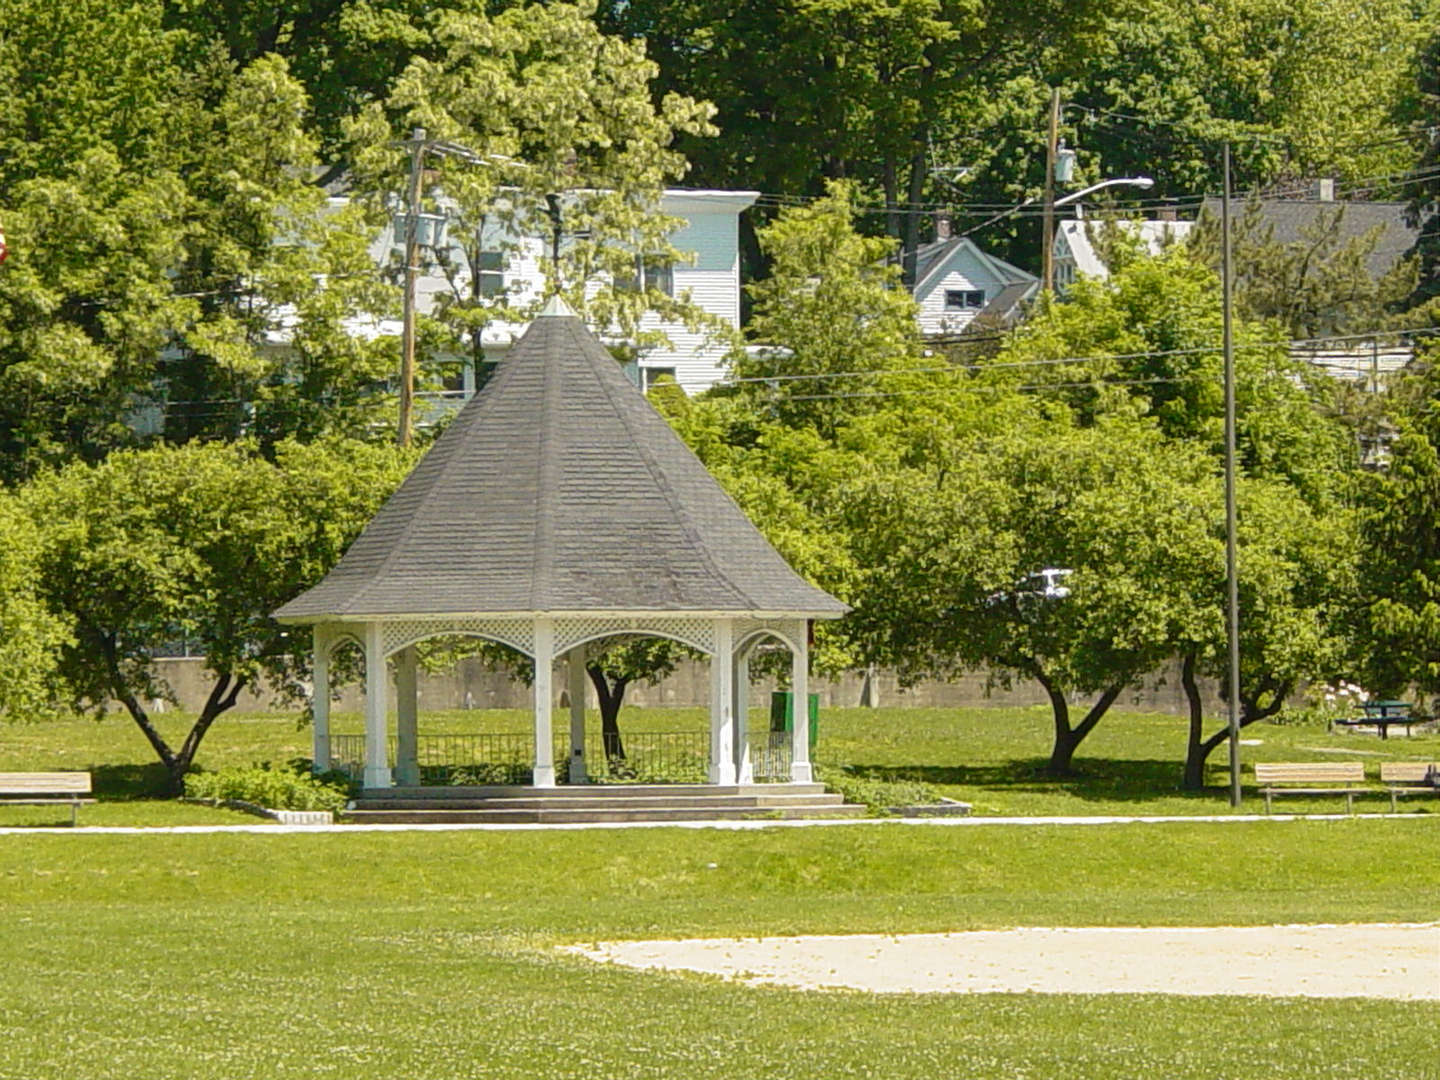 Pearl River Central Avenue Gazebo